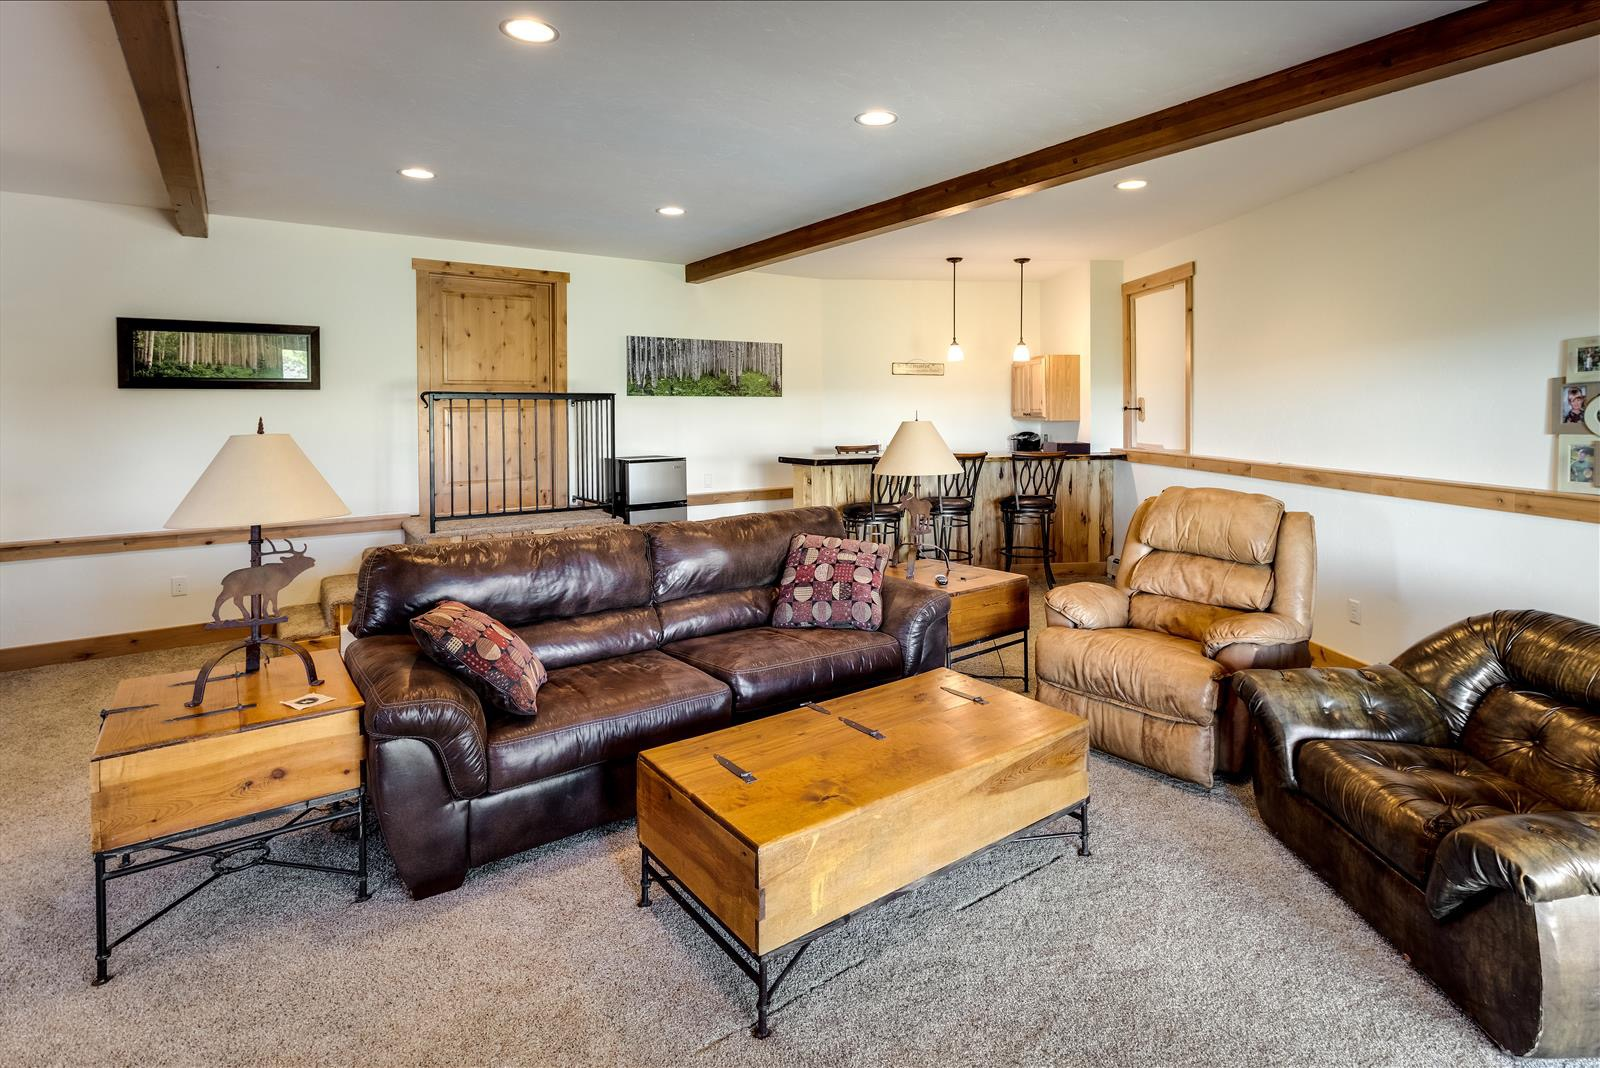 Family room w/ wet bar, some furnishings included